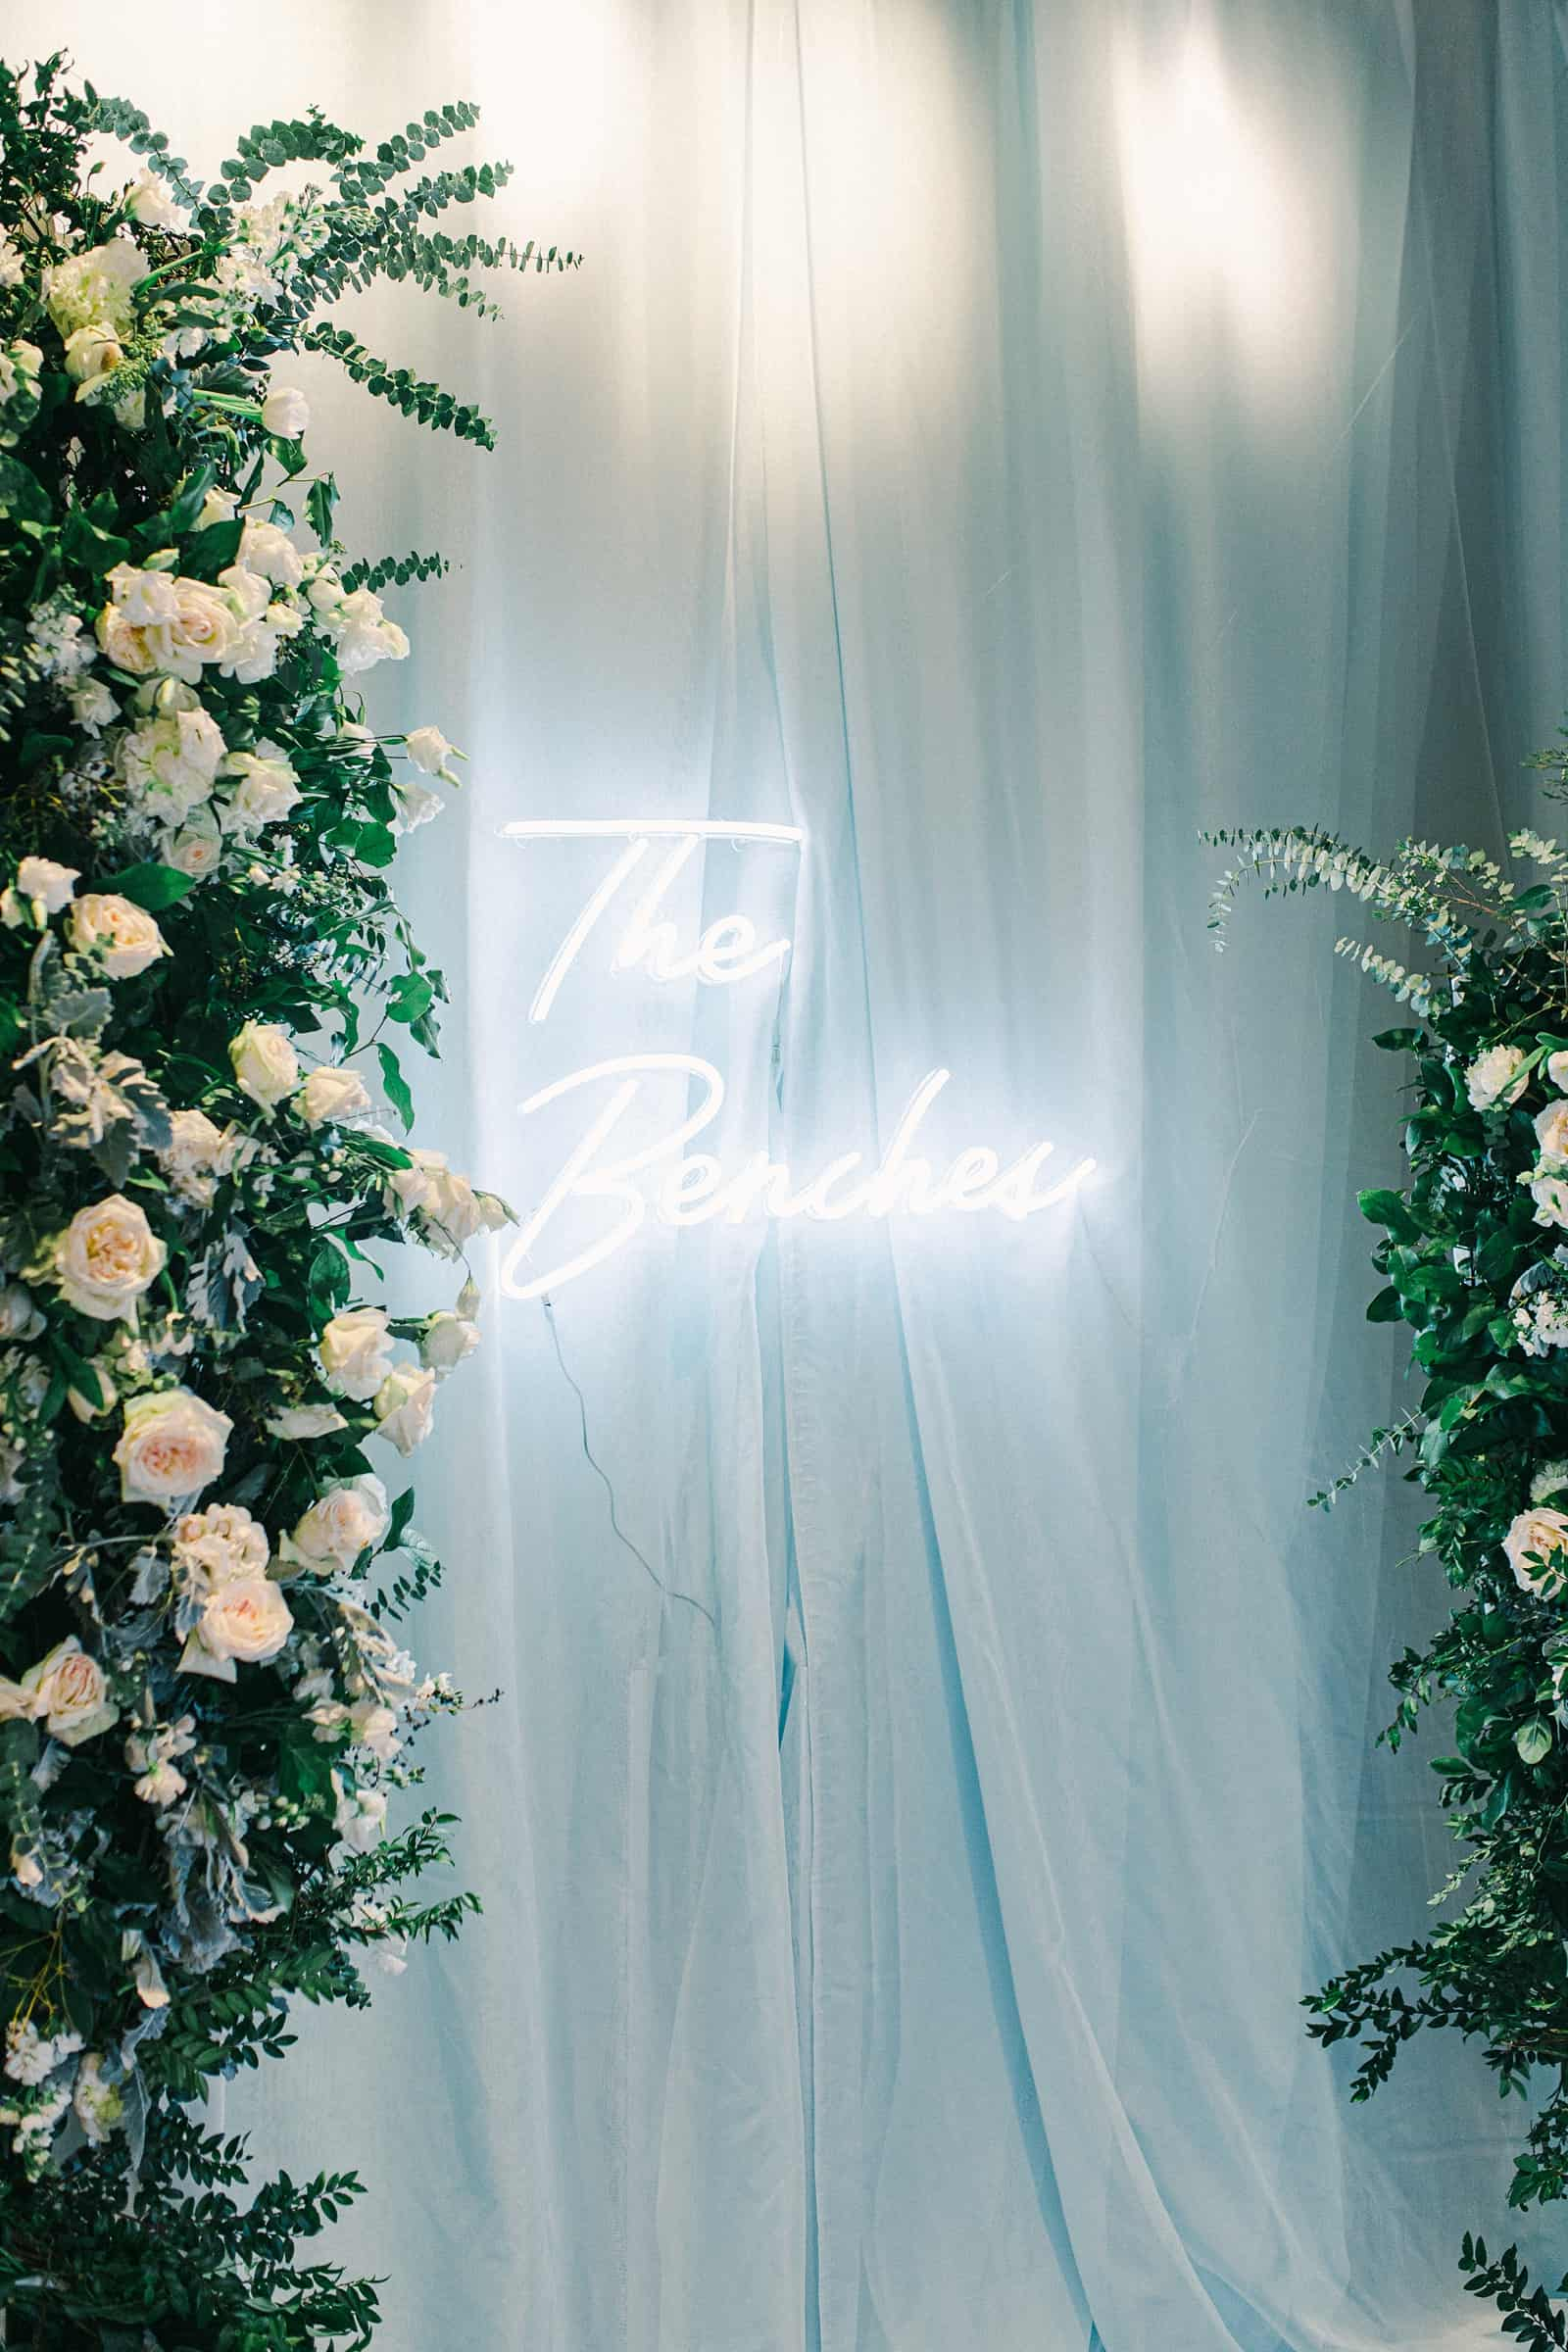 Winter wedding reception decor, custom neon sign with bride and groom name